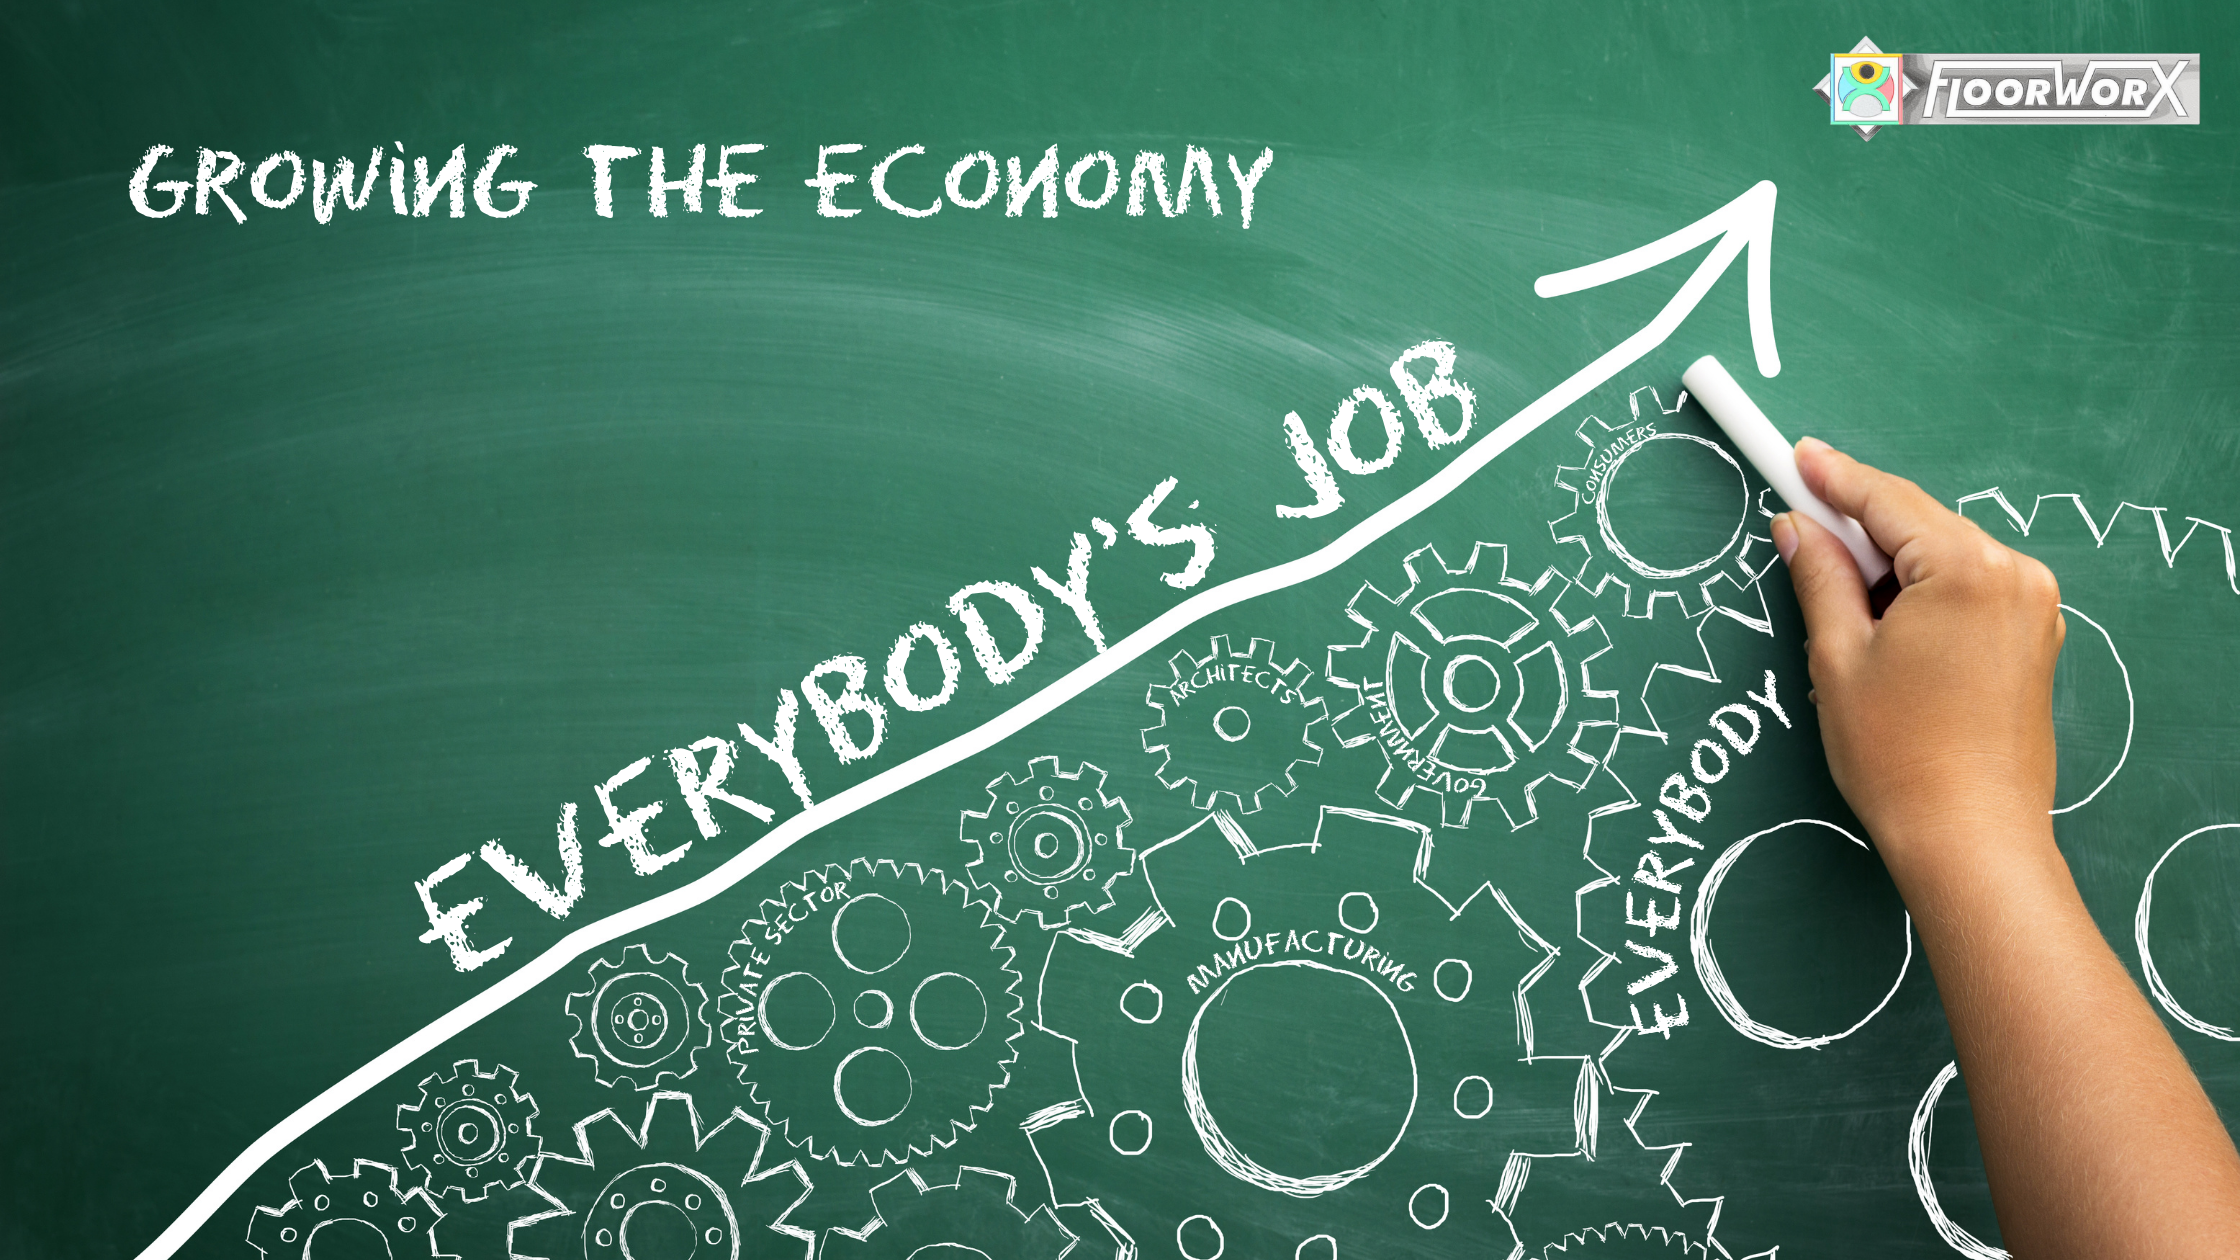 Growing the Economy is Everyone's Job